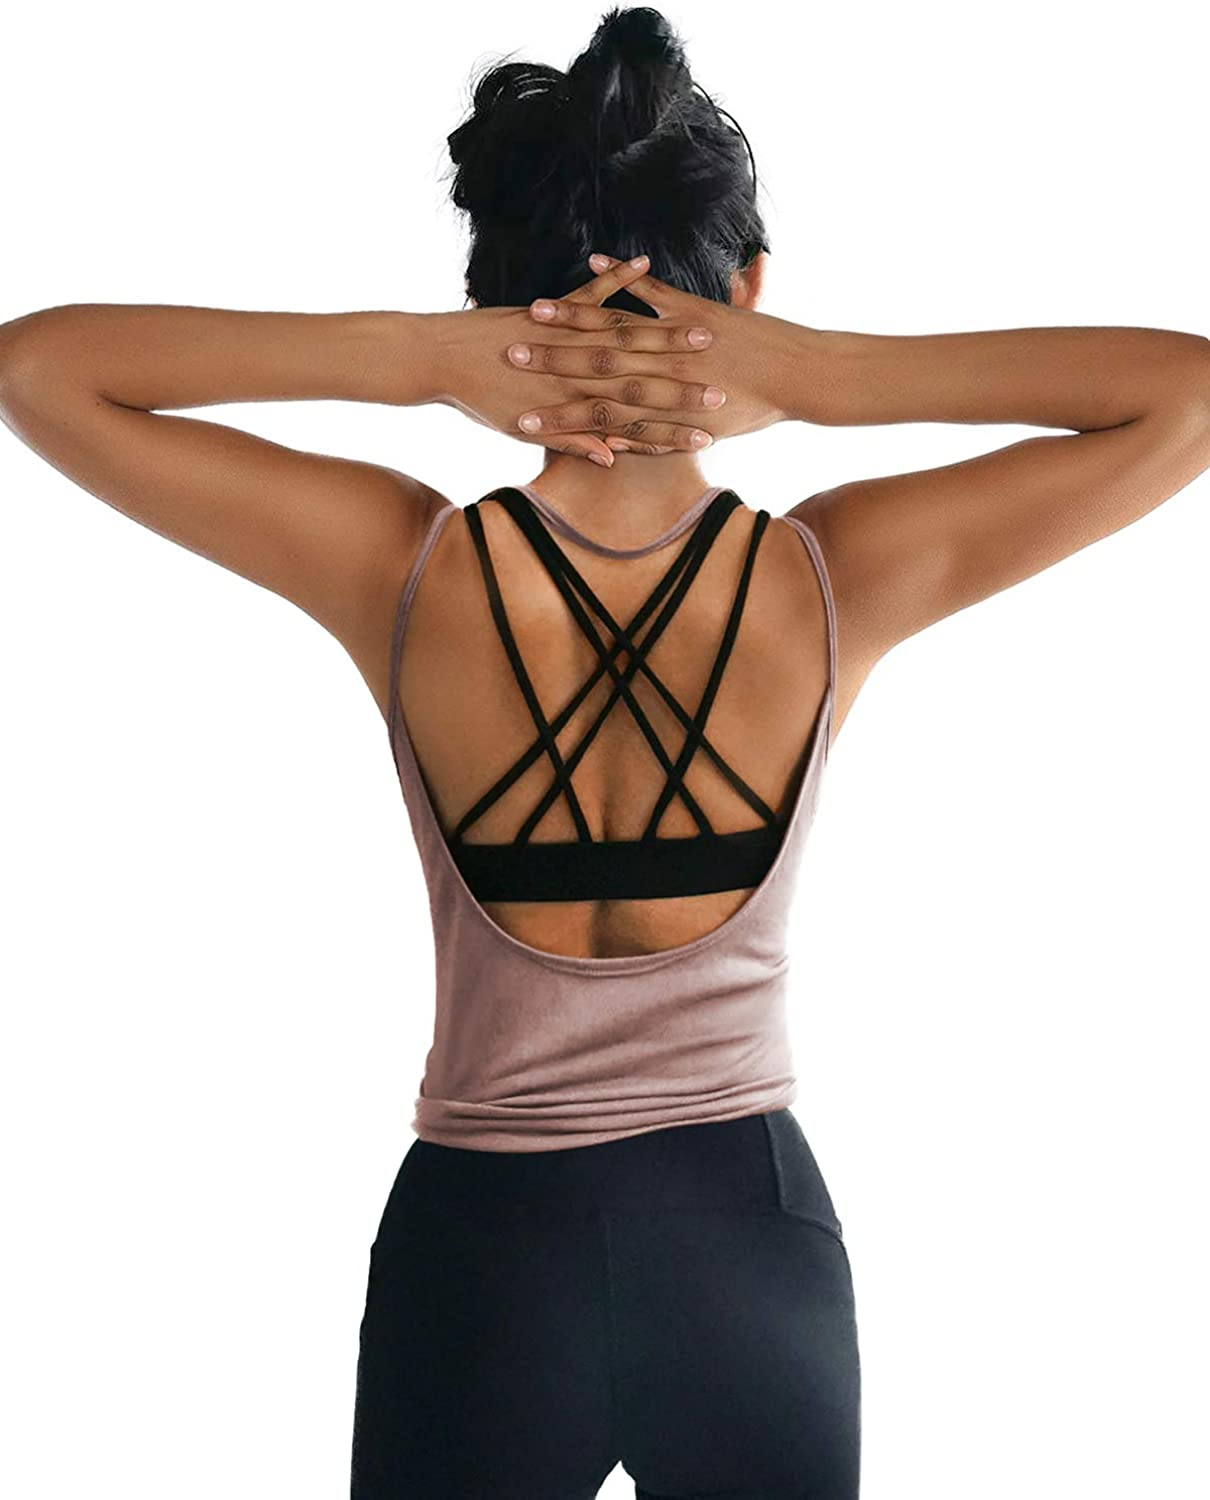 OYANUS Womens Summer Workout Tops Sexy Backless Yoga Shirts Open Back Activewear Running Sports Gym Quick Dry Tank Tops: Clothing